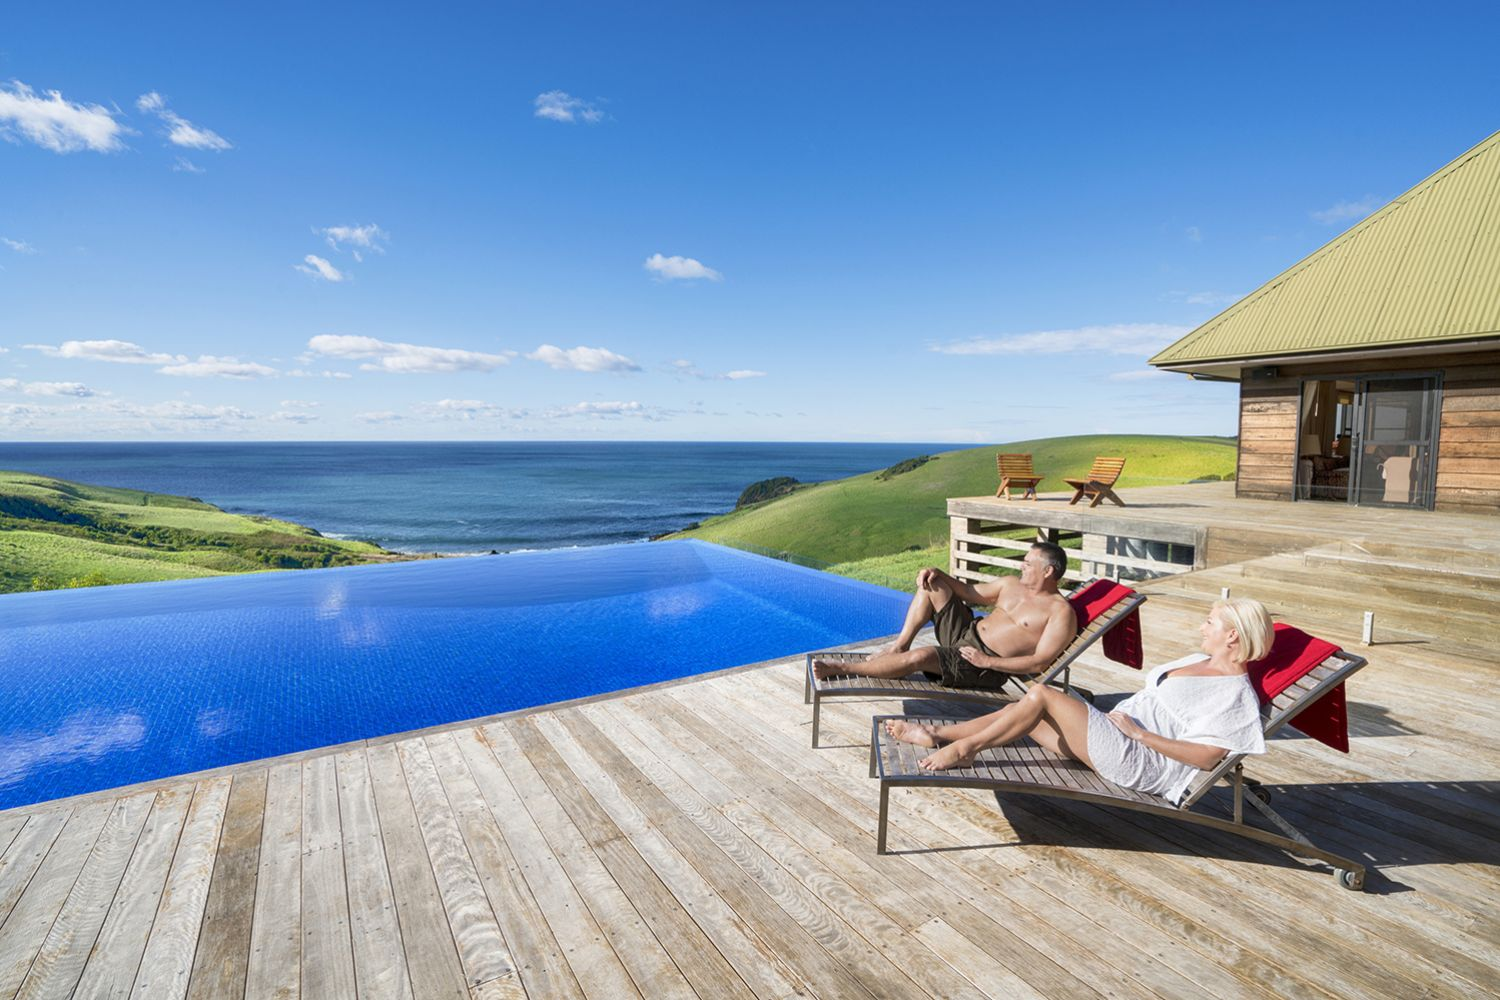 Couple relaxing by the pool at Ocean Farm luxury accommodation in Gerringong